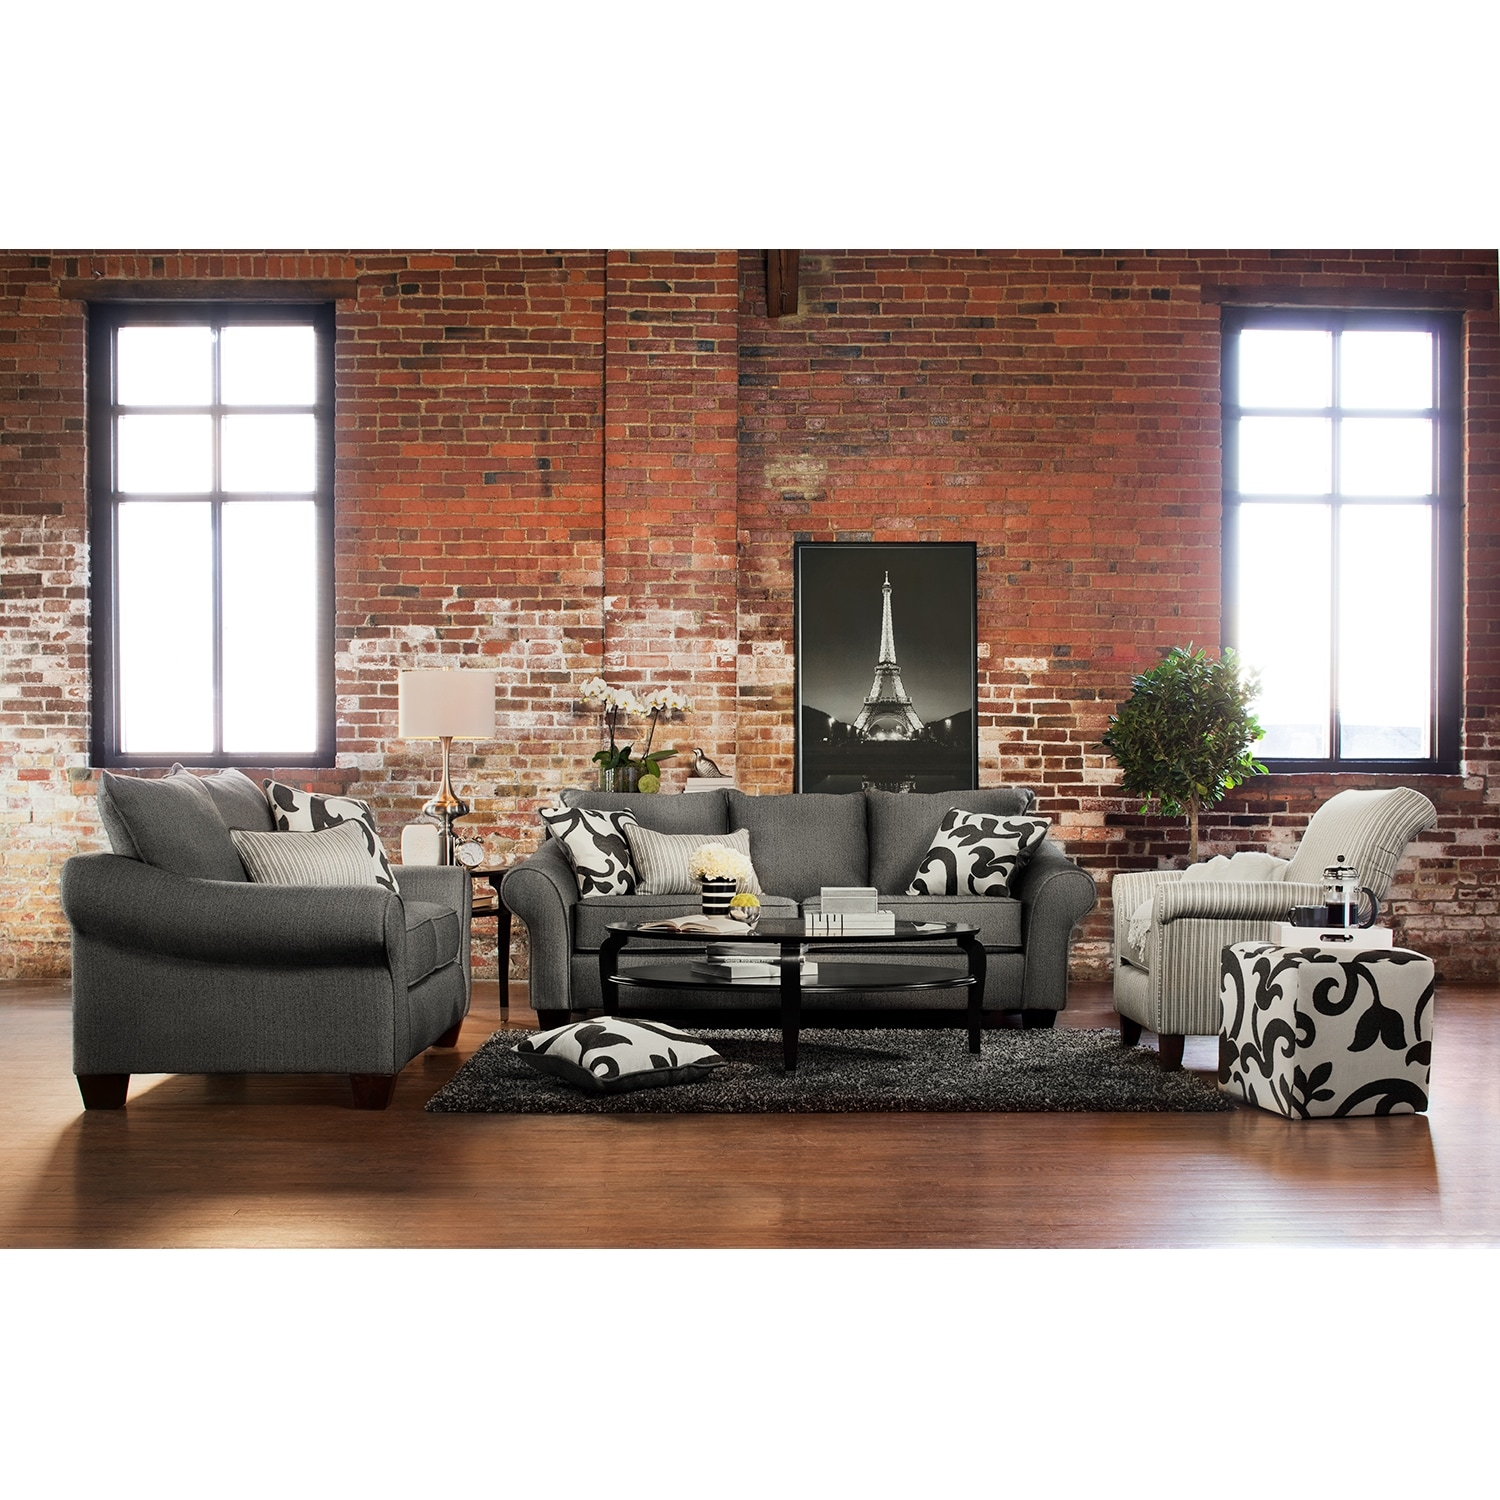 Colette sofa loveseat and accent chair set gray value for Living room chair set